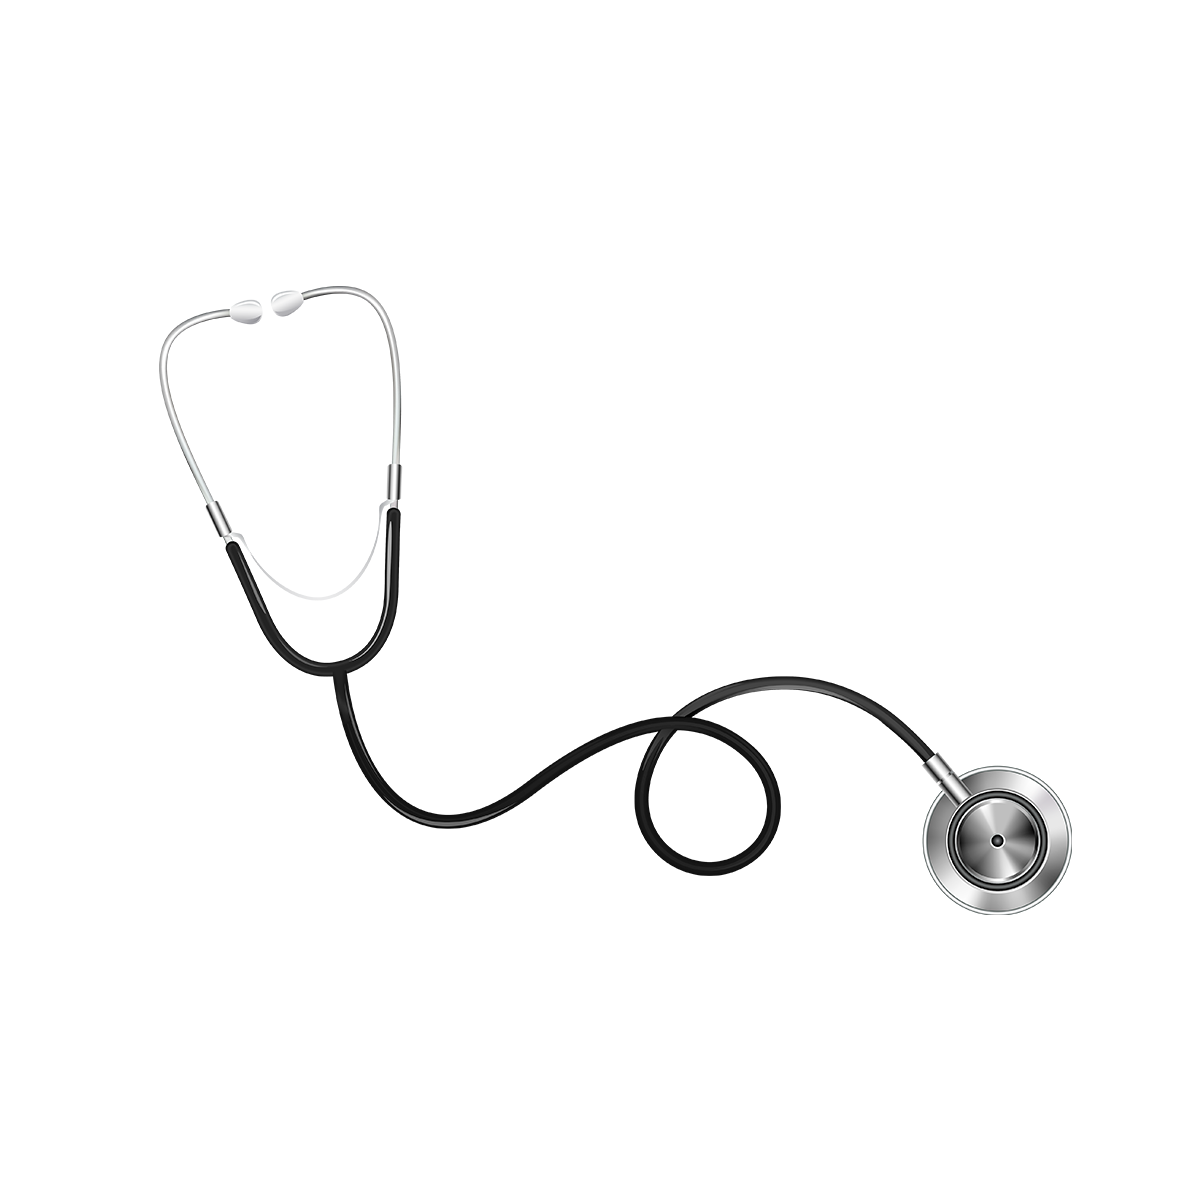 Veterinary stethoscope